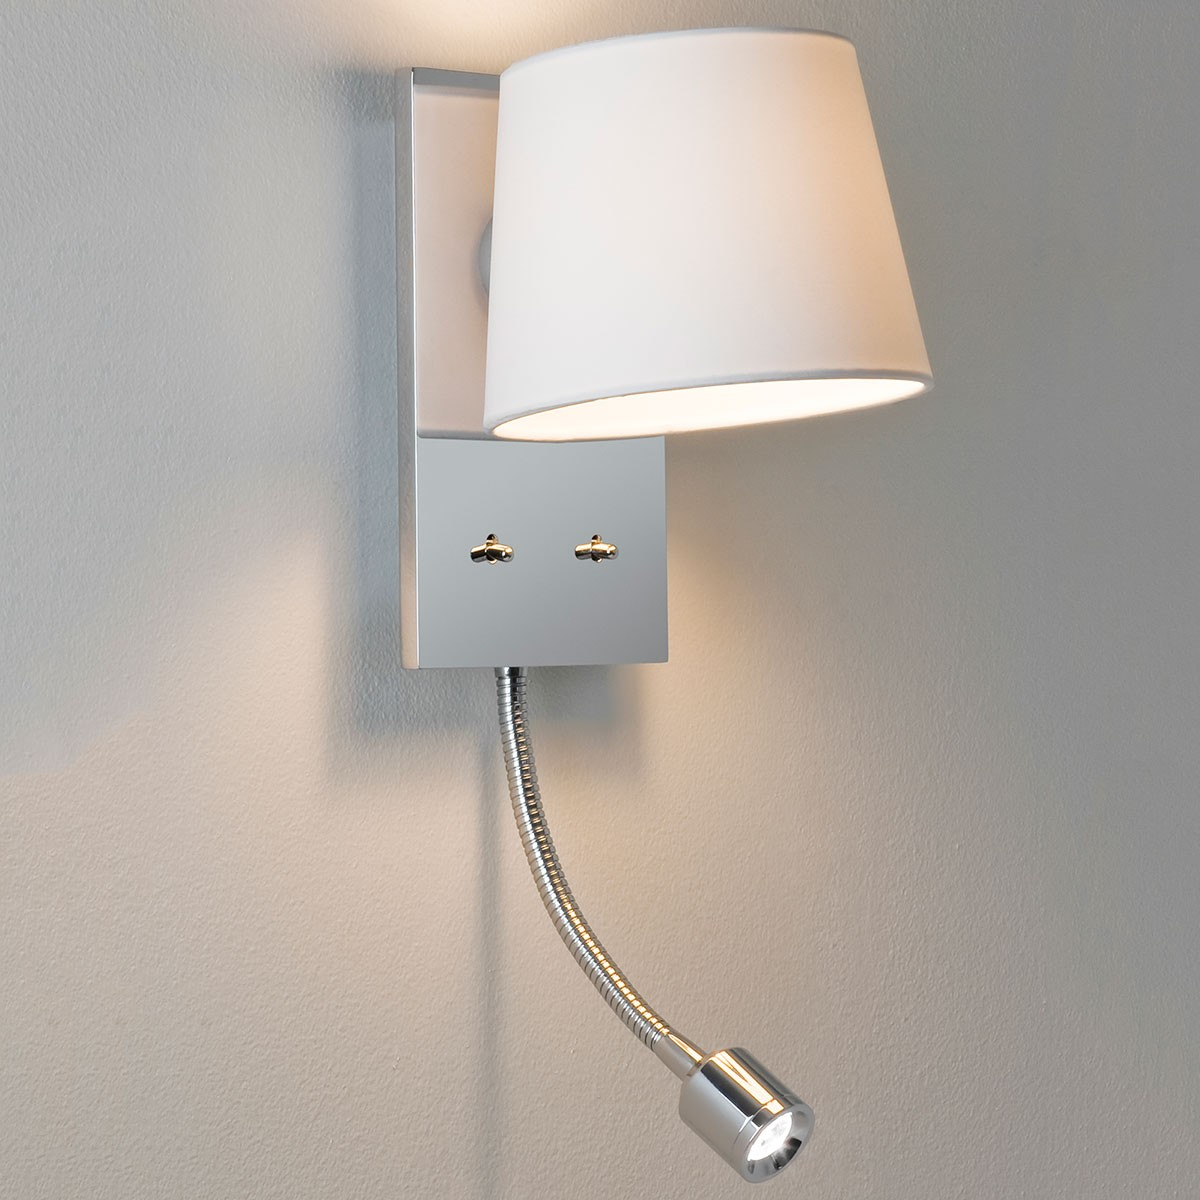 Astro Sala Polished Chrome Wall Light with White Shade and LED Reading Light at UK Electrical ...